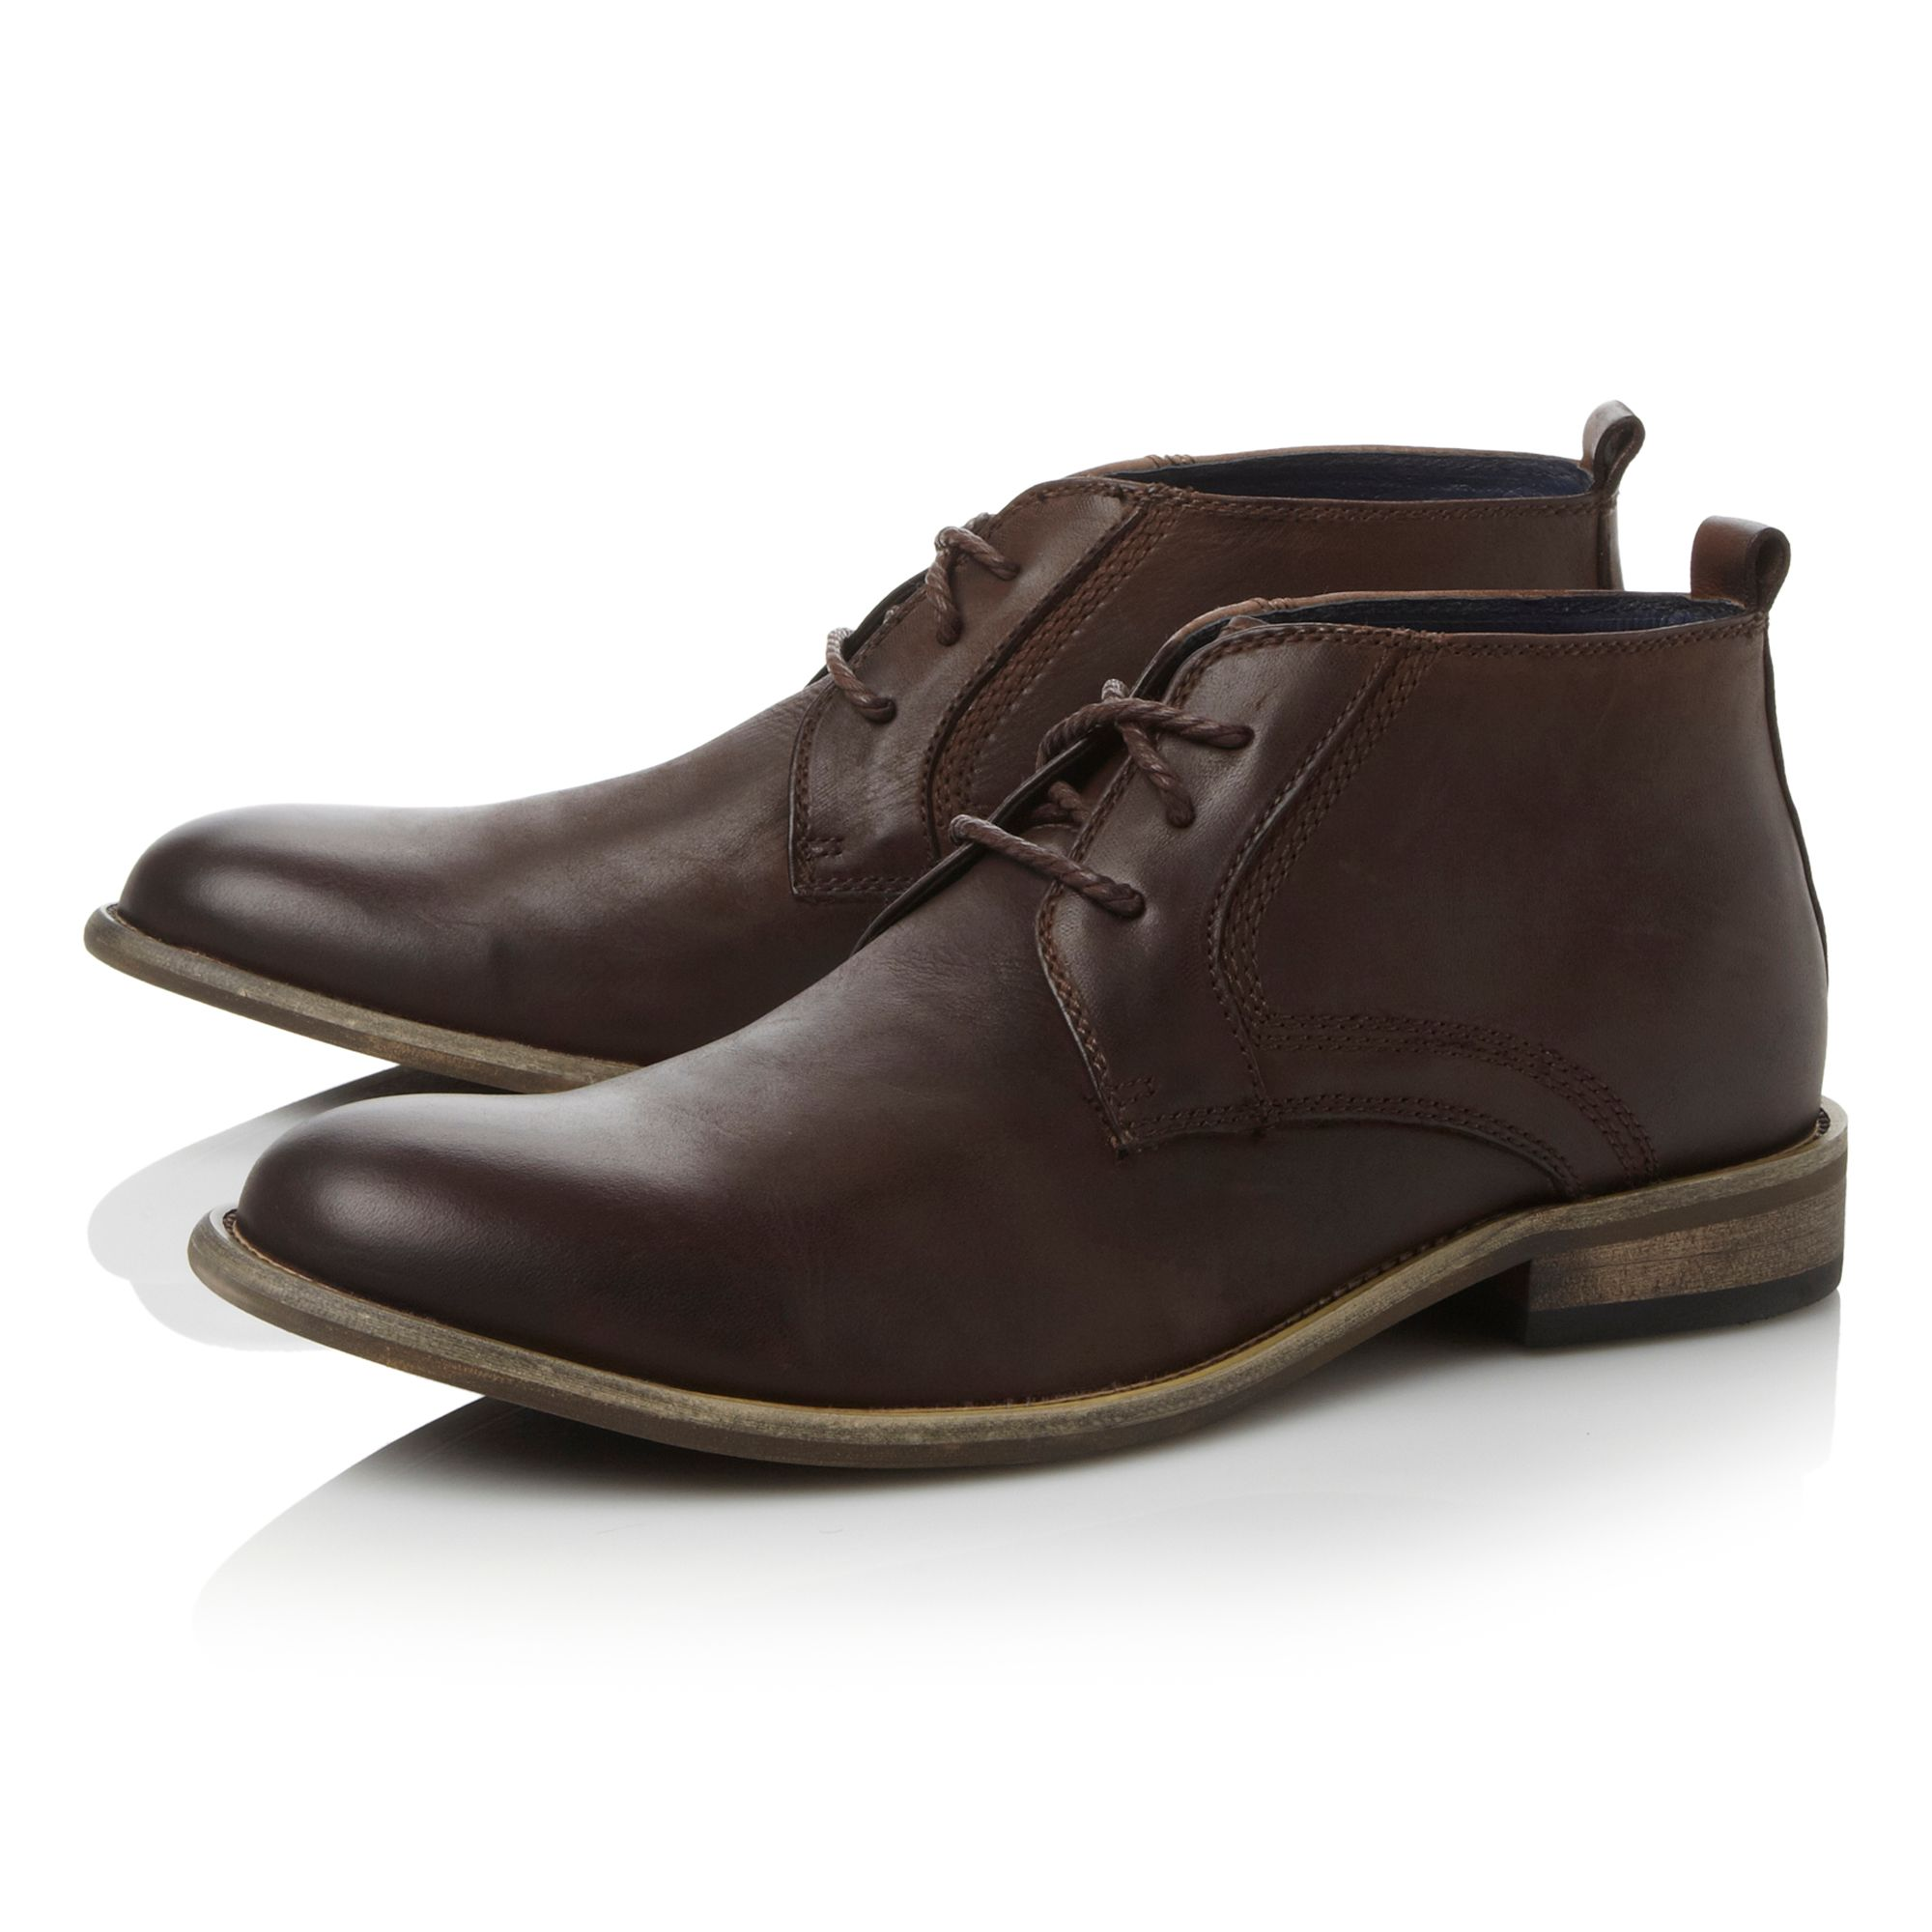 Boro lace up 3 eye casual chukka boots